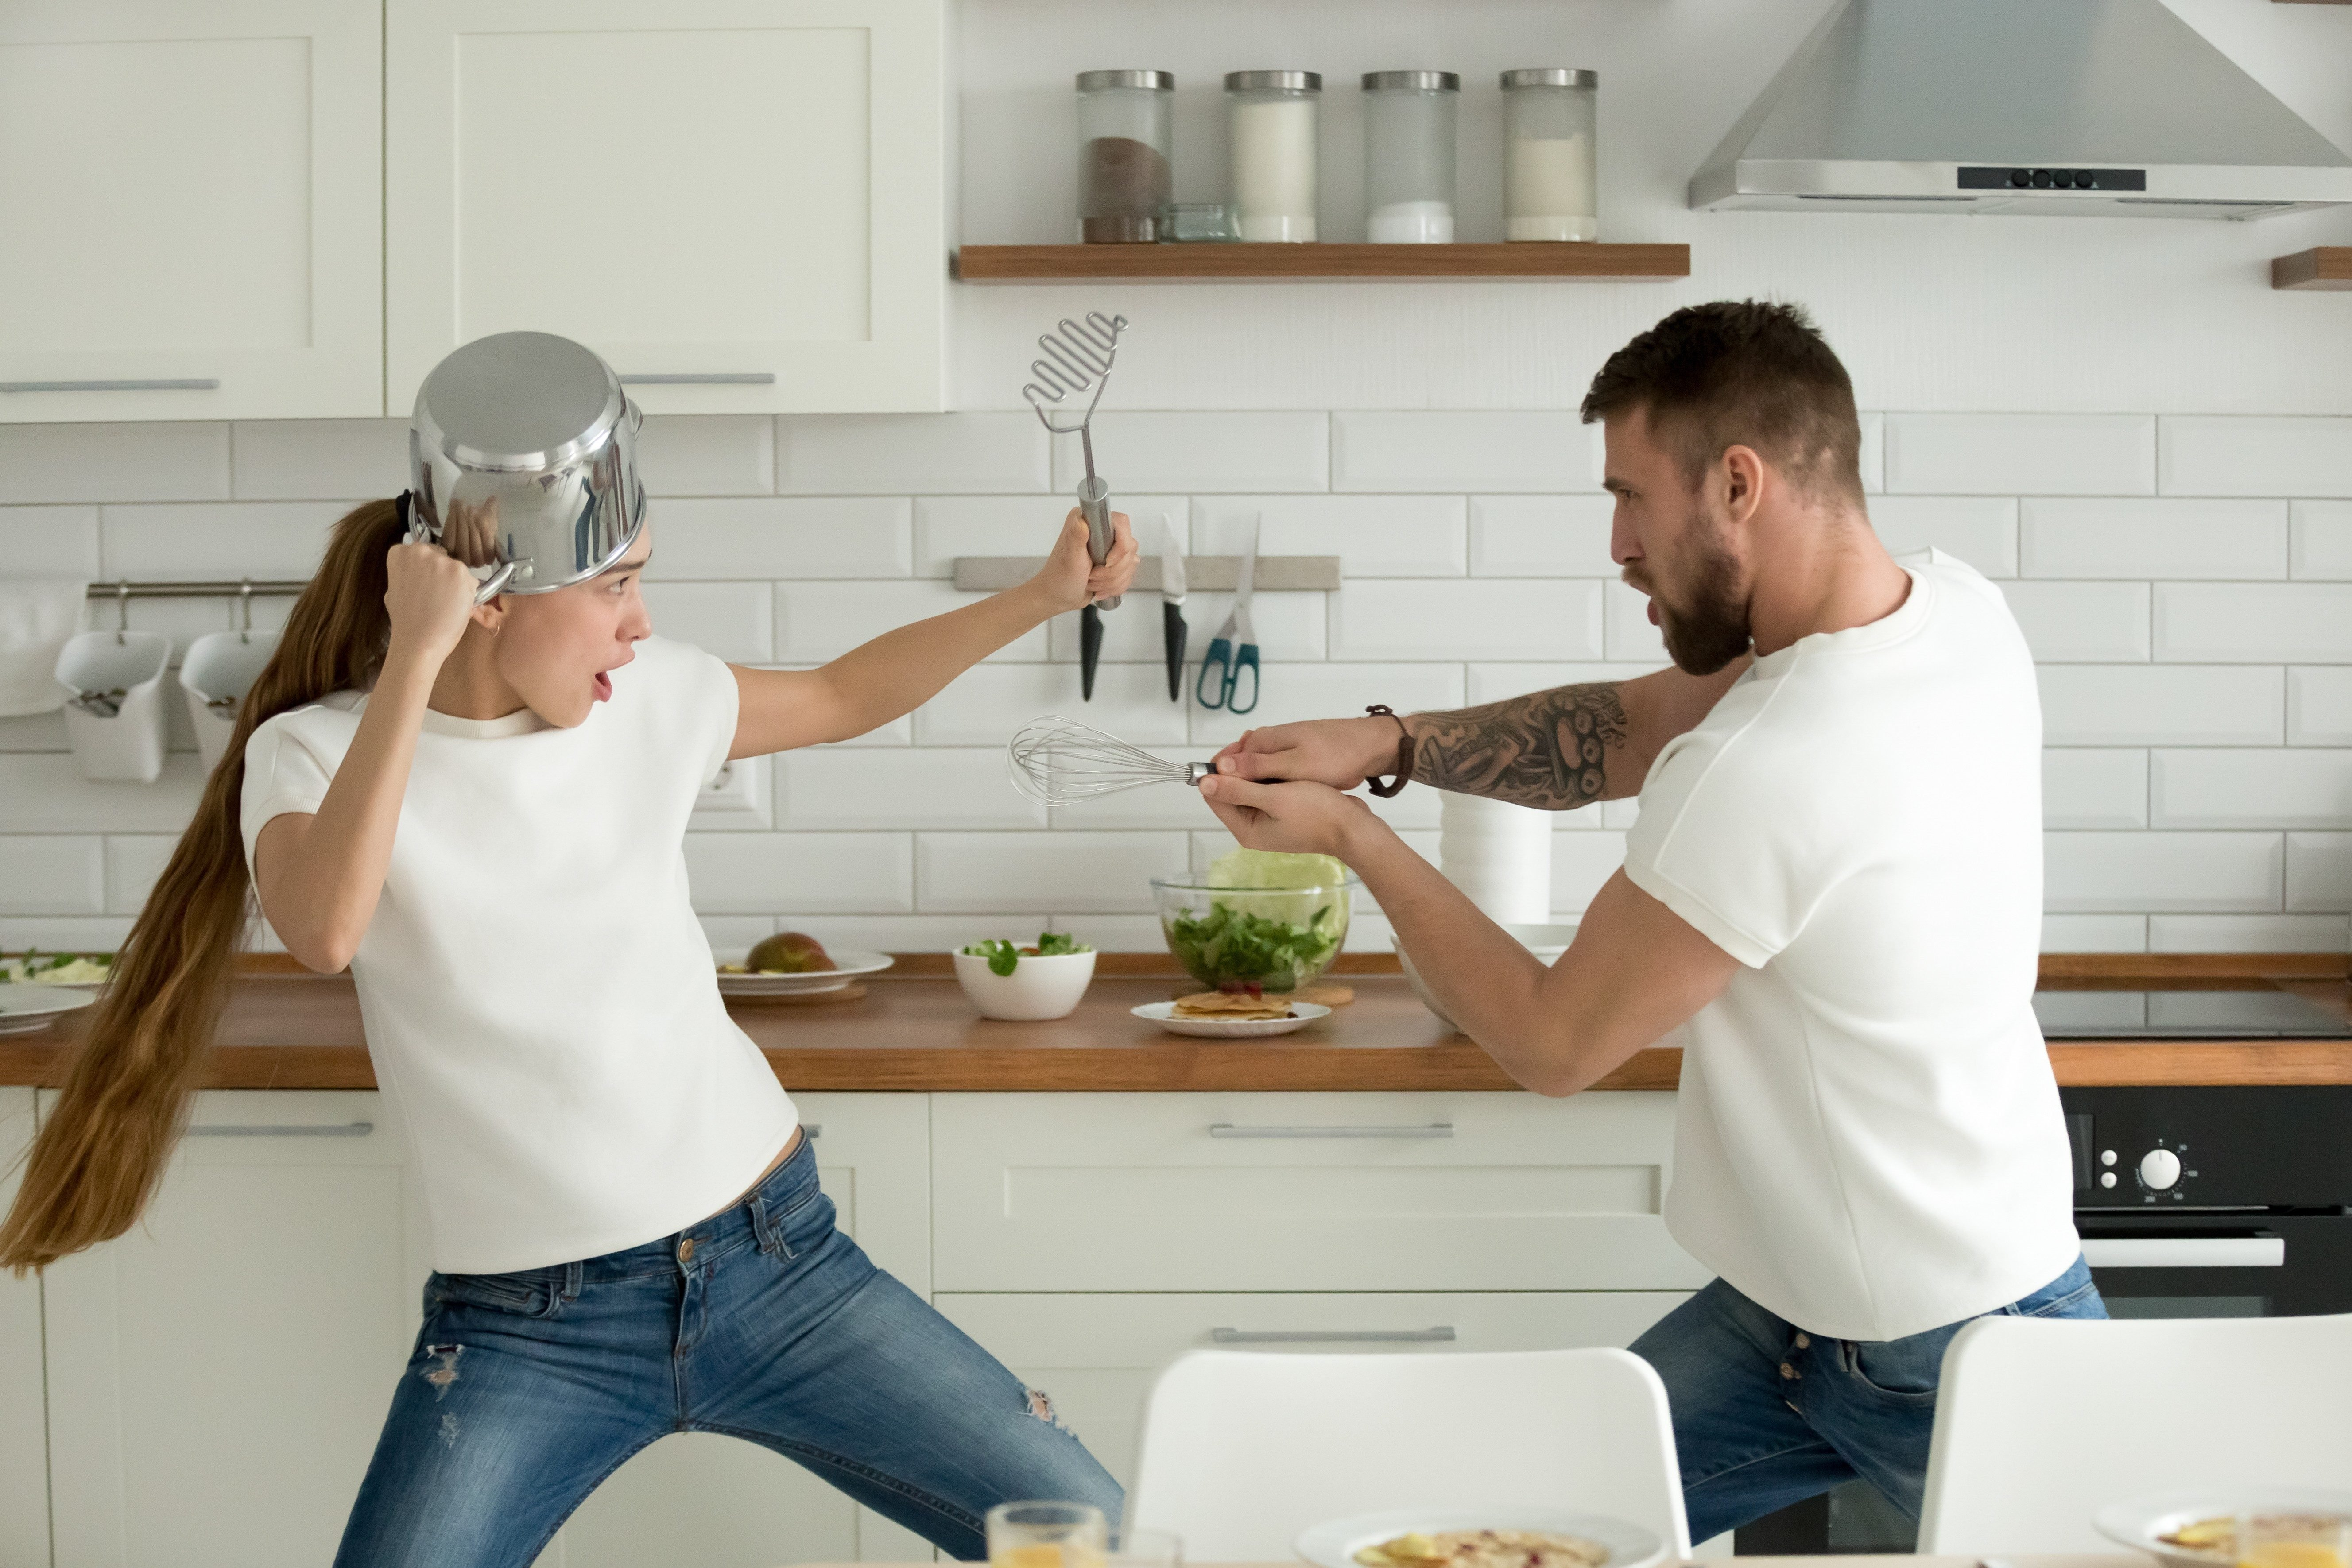 Funny couple pretending fight with utensils tools while cooking at home together, husband and wife having fun feeling playful holding kitchenware struggling in the kitchen preparing healthy food